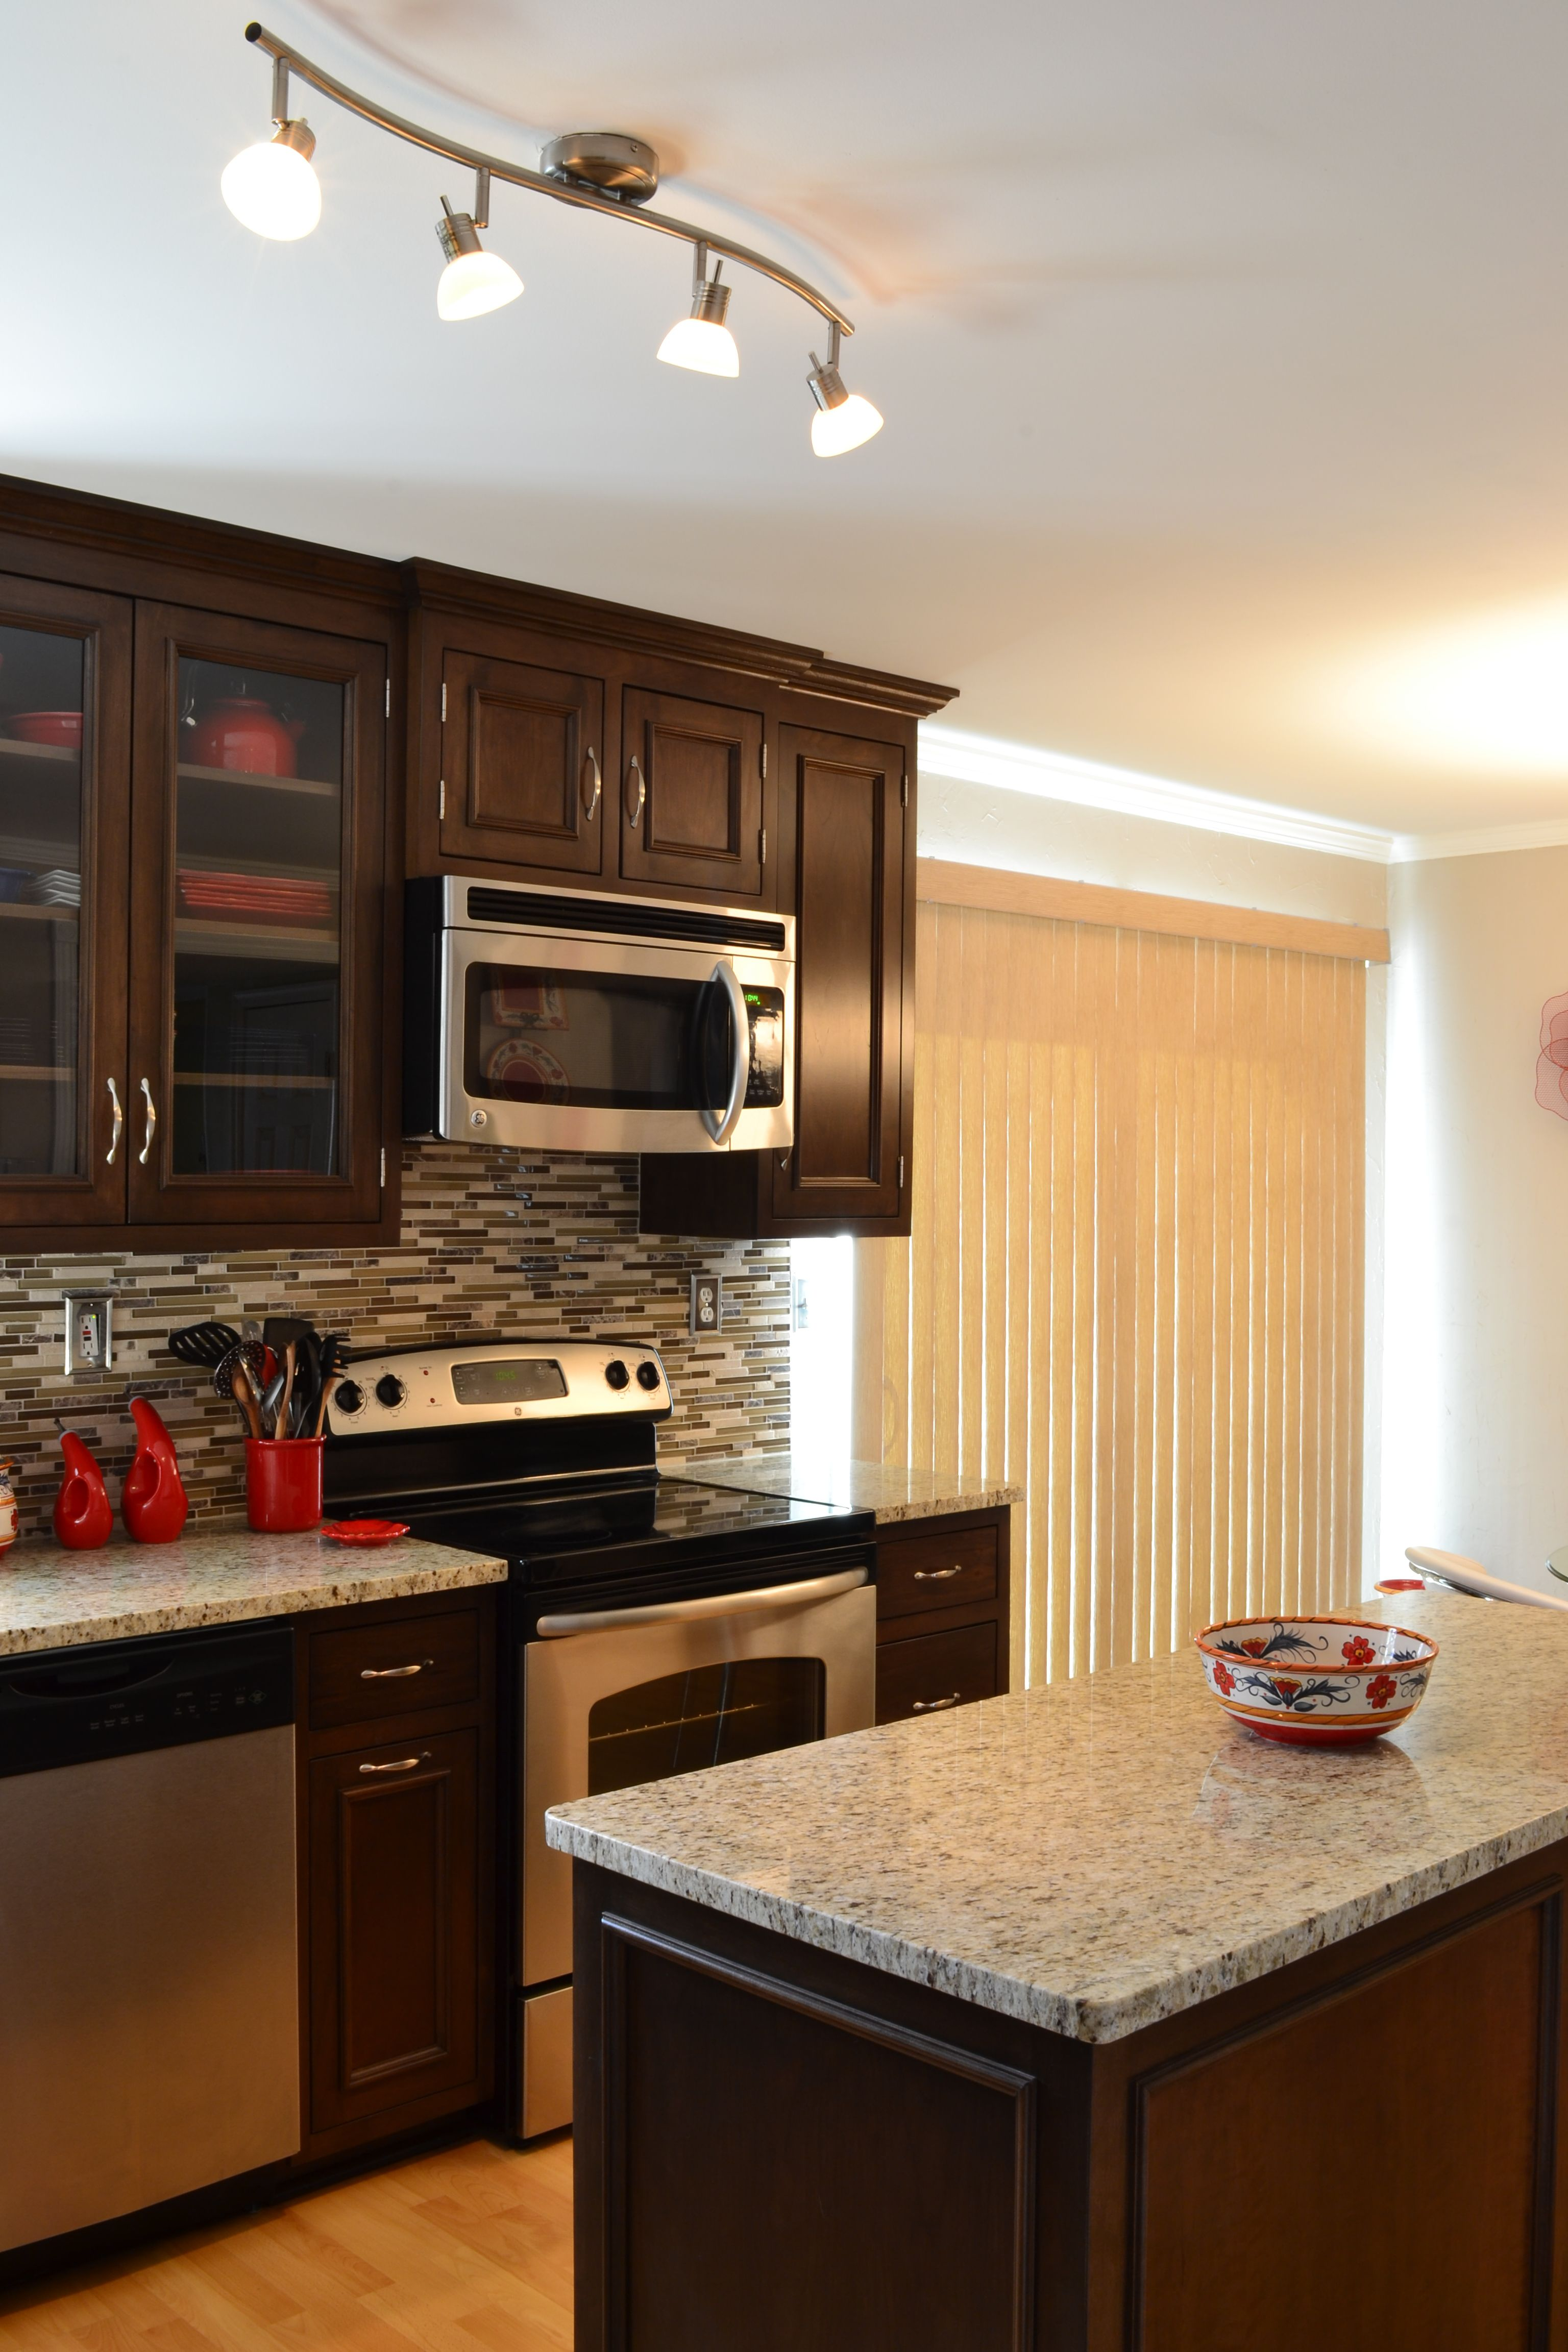 Custom Cabinets In Frederick Md Full Kitchen Remodel Custom Cabinets Kitchen Remodel